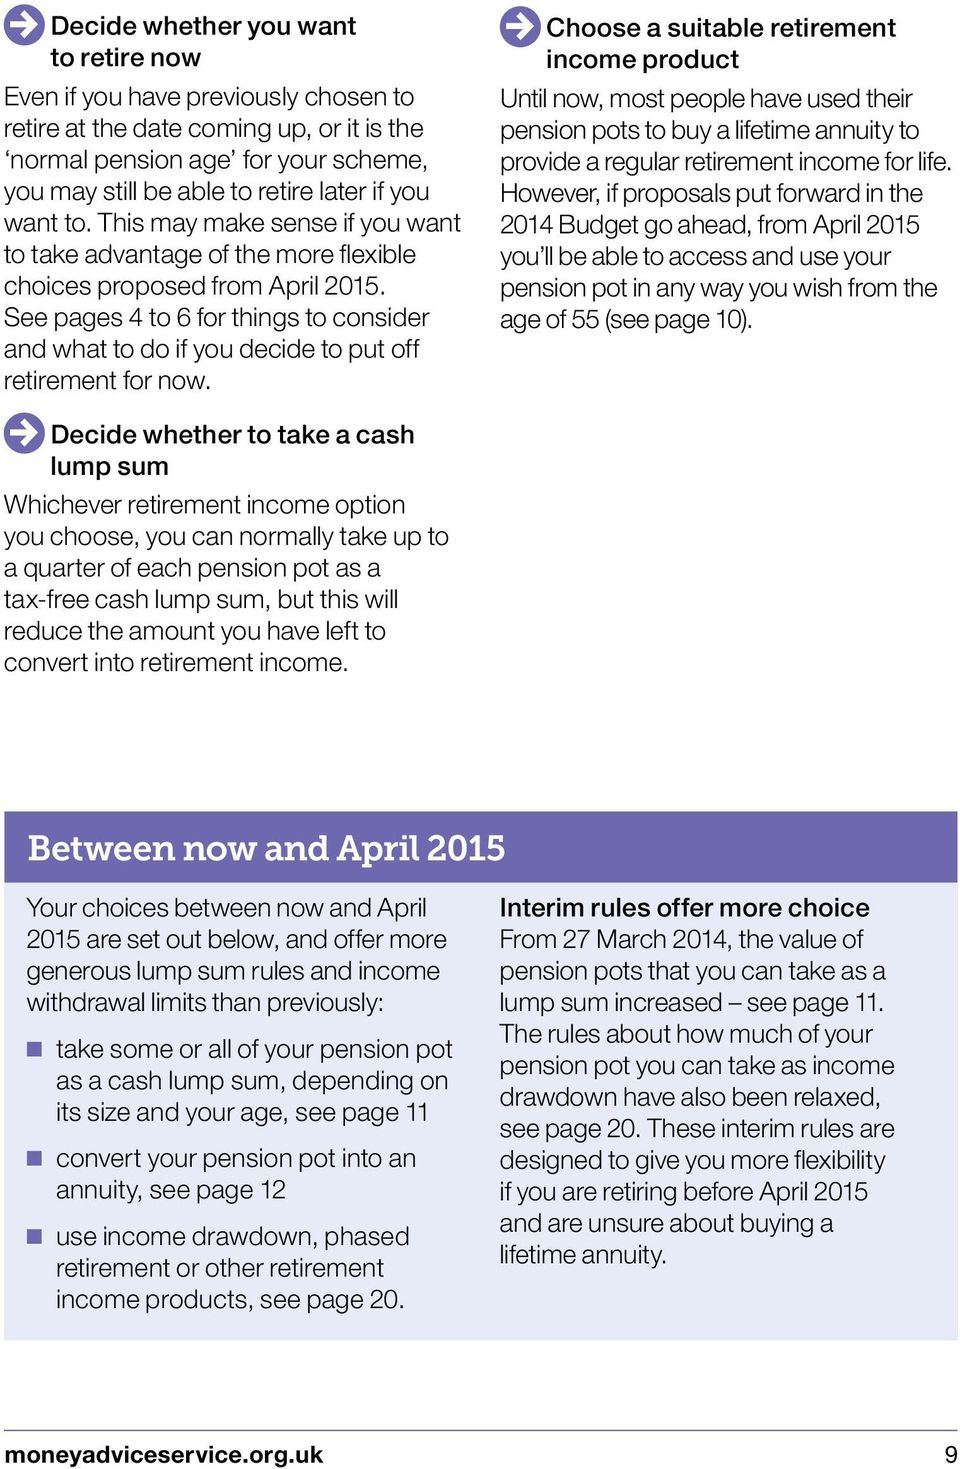 See pages 4 to 6 for things to consider and what to do if you decide to put off retirement for now.